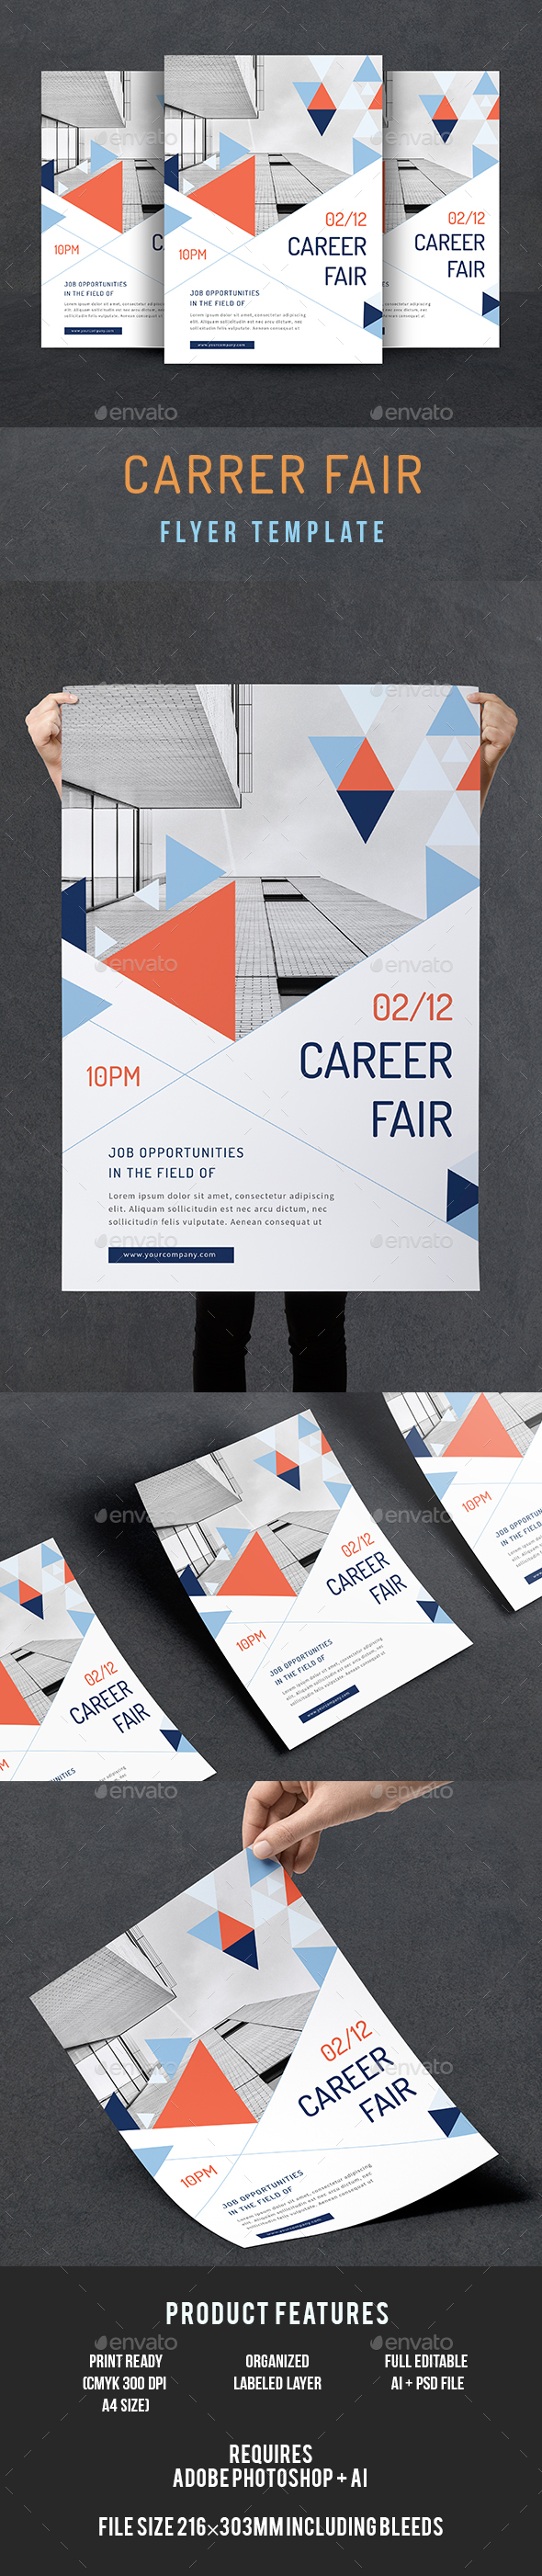 Career Fair Flyer - Corporate Flyers